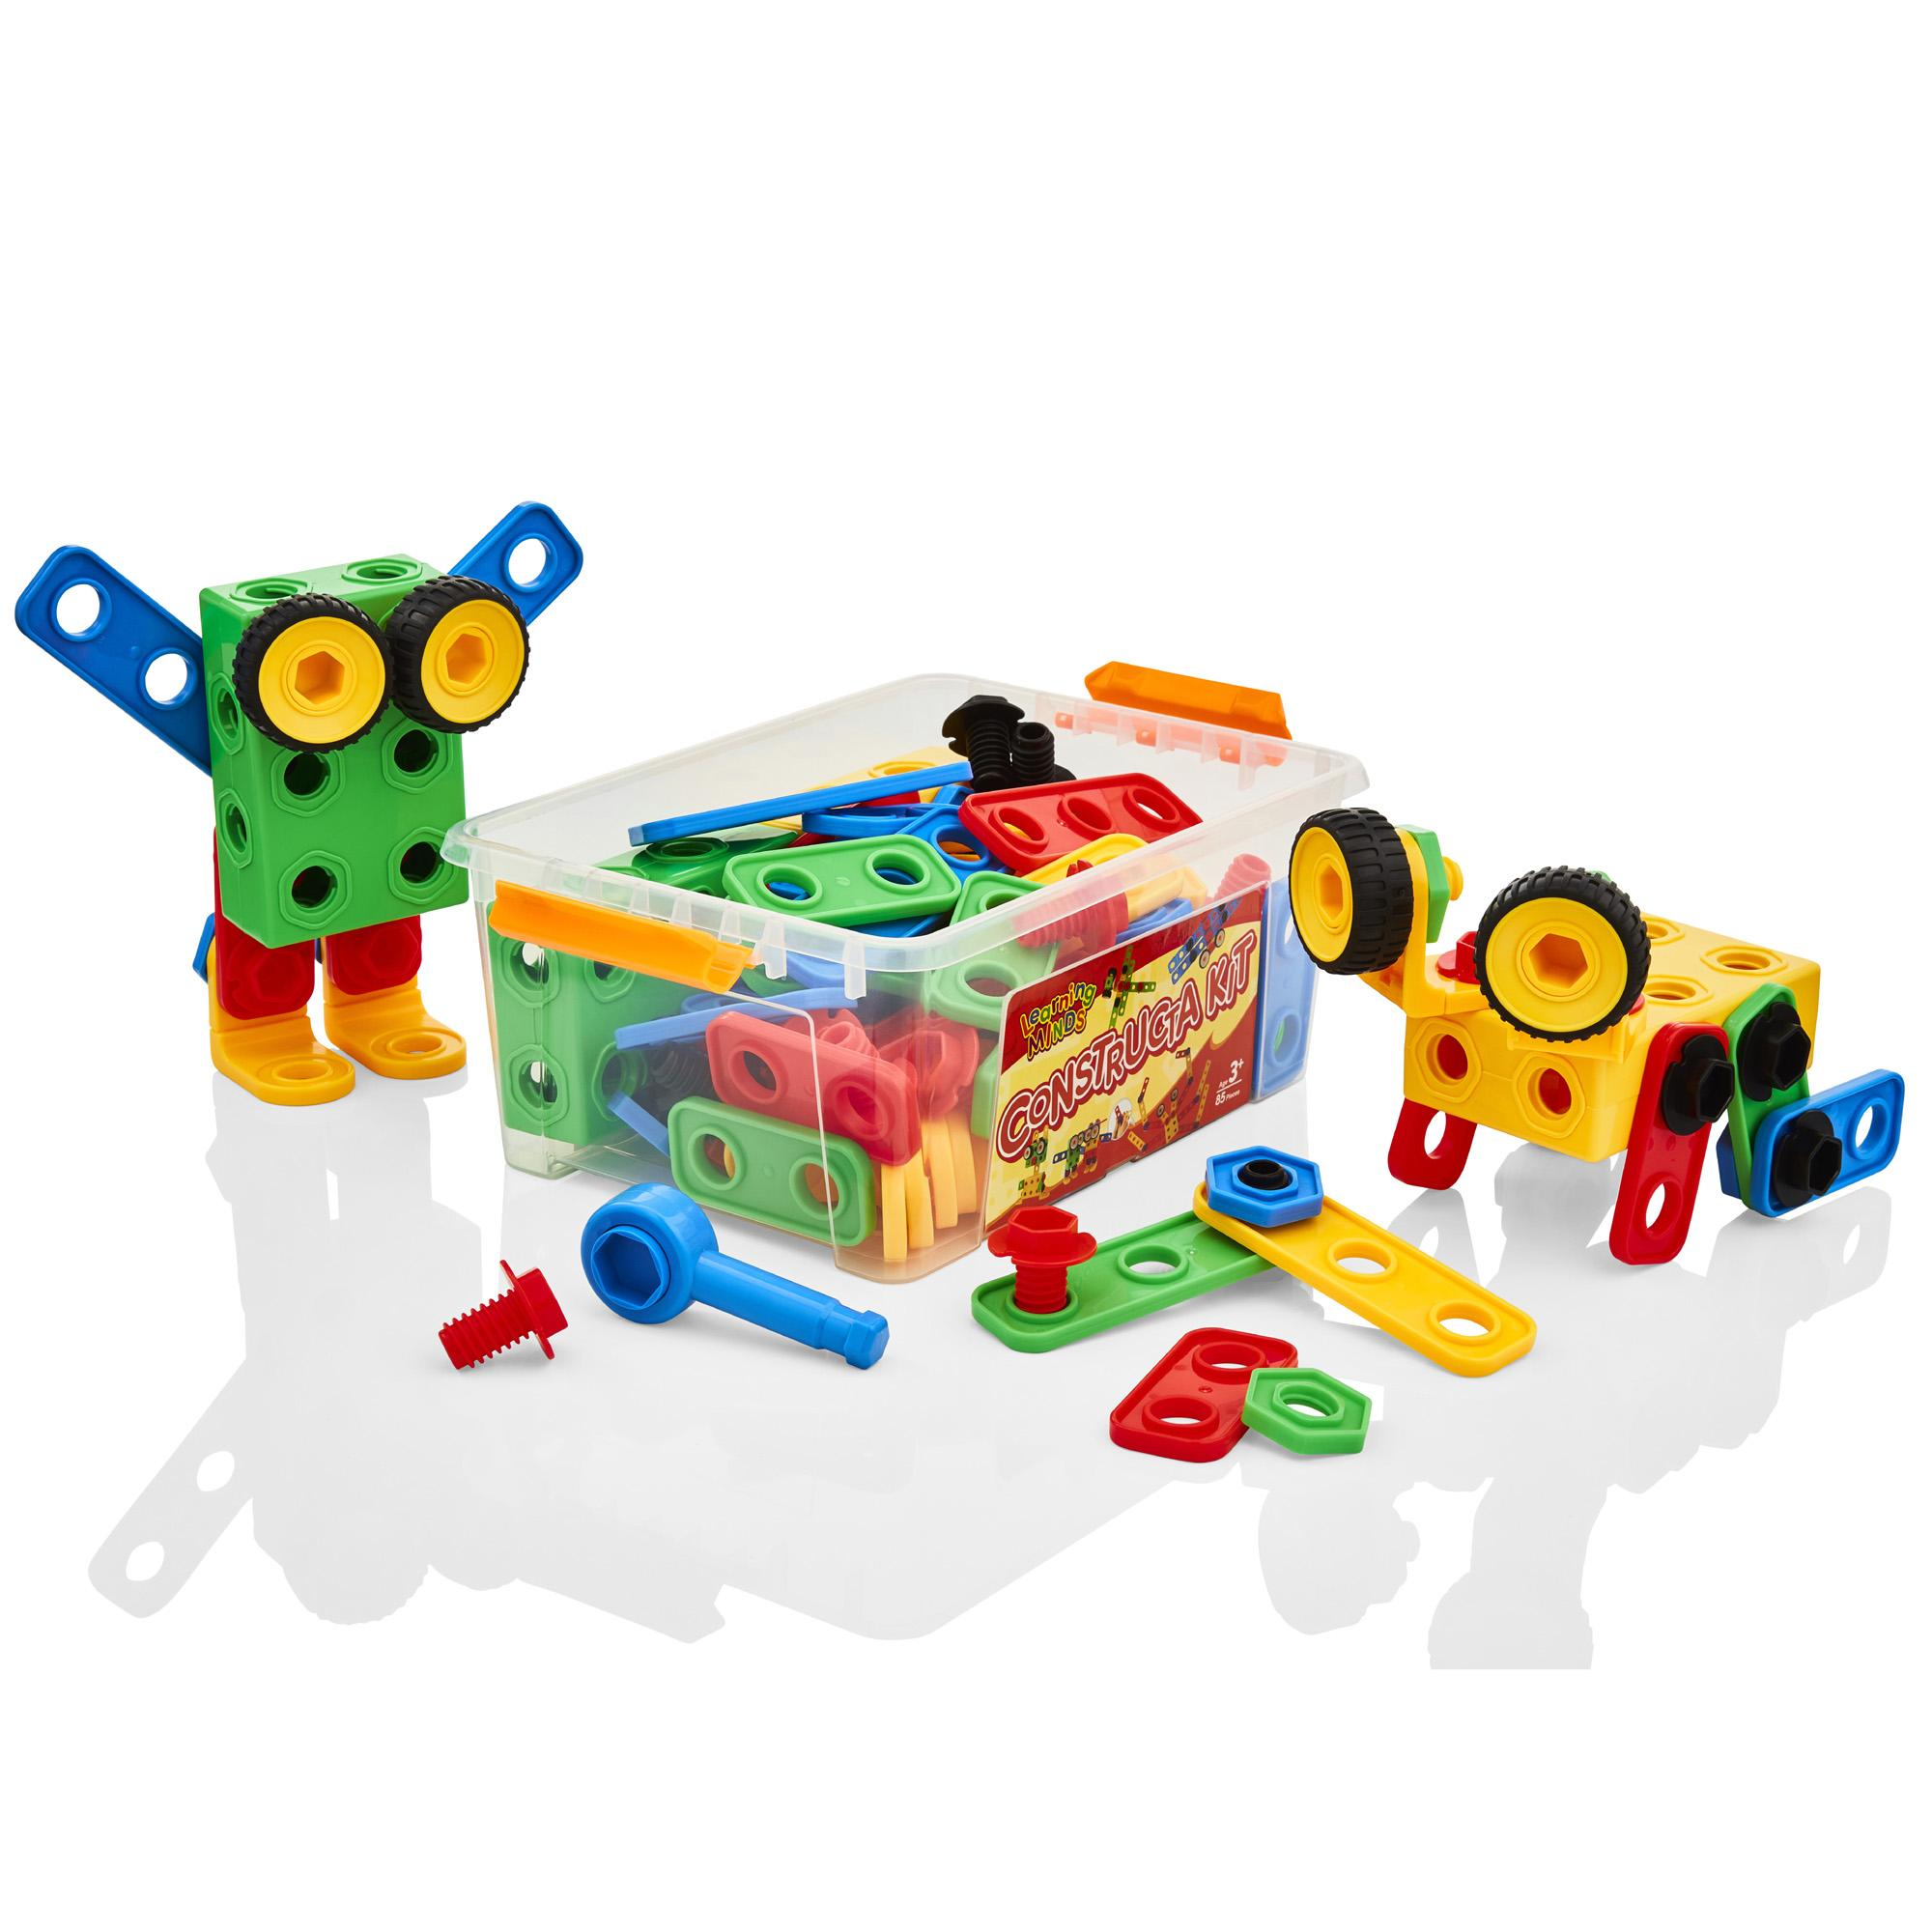 Toy Building Set For Boys : Learning minds model building tool kit childrens kids